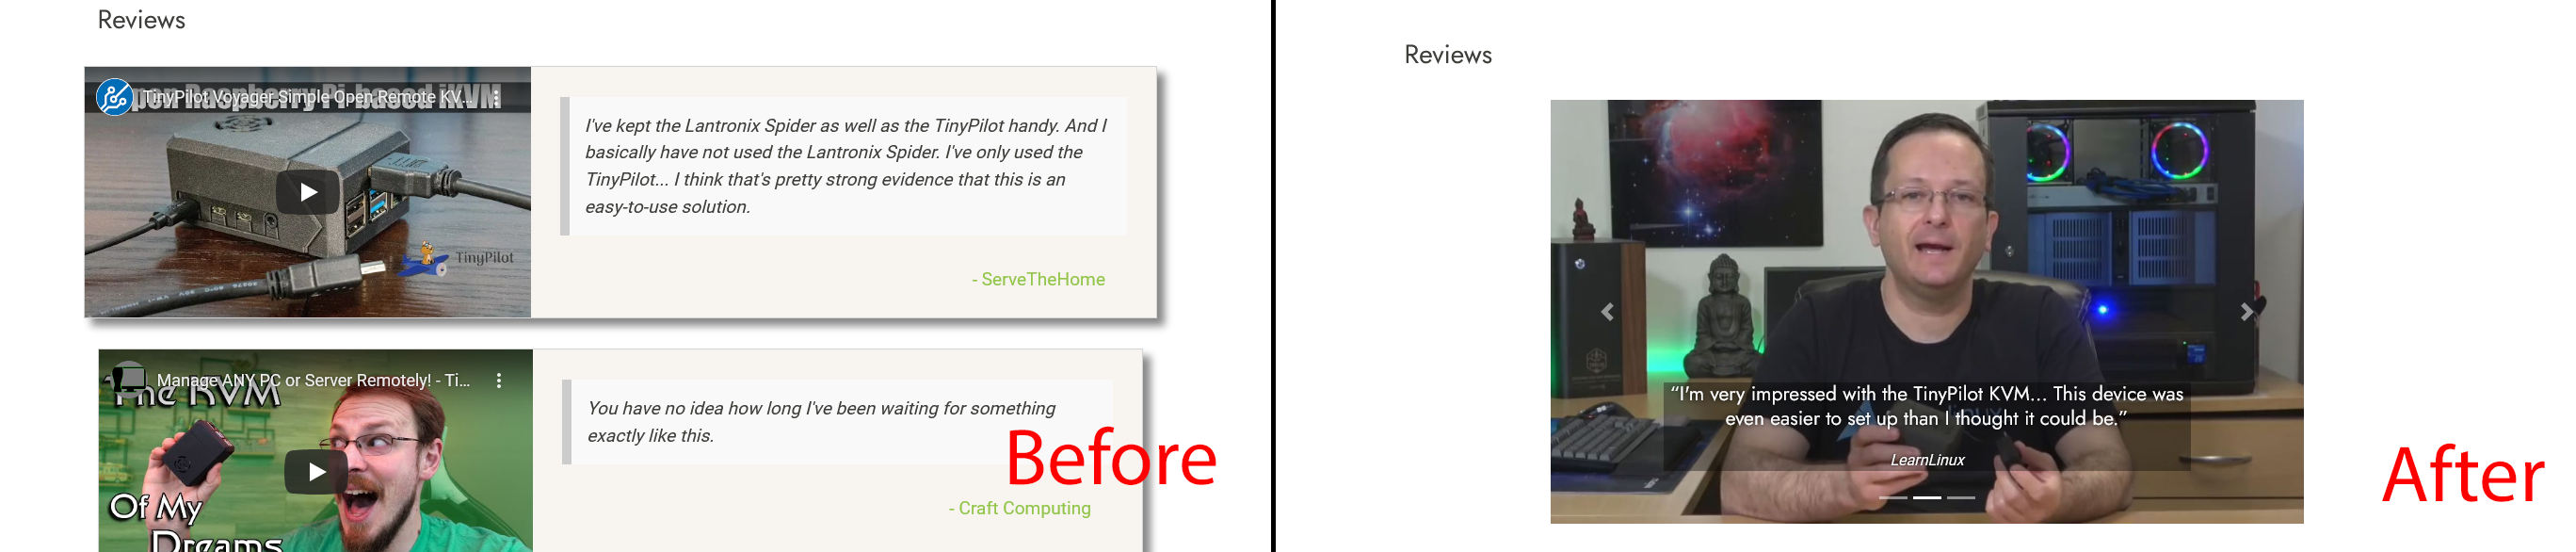 Before and after shots of reviews on TinyPilot website